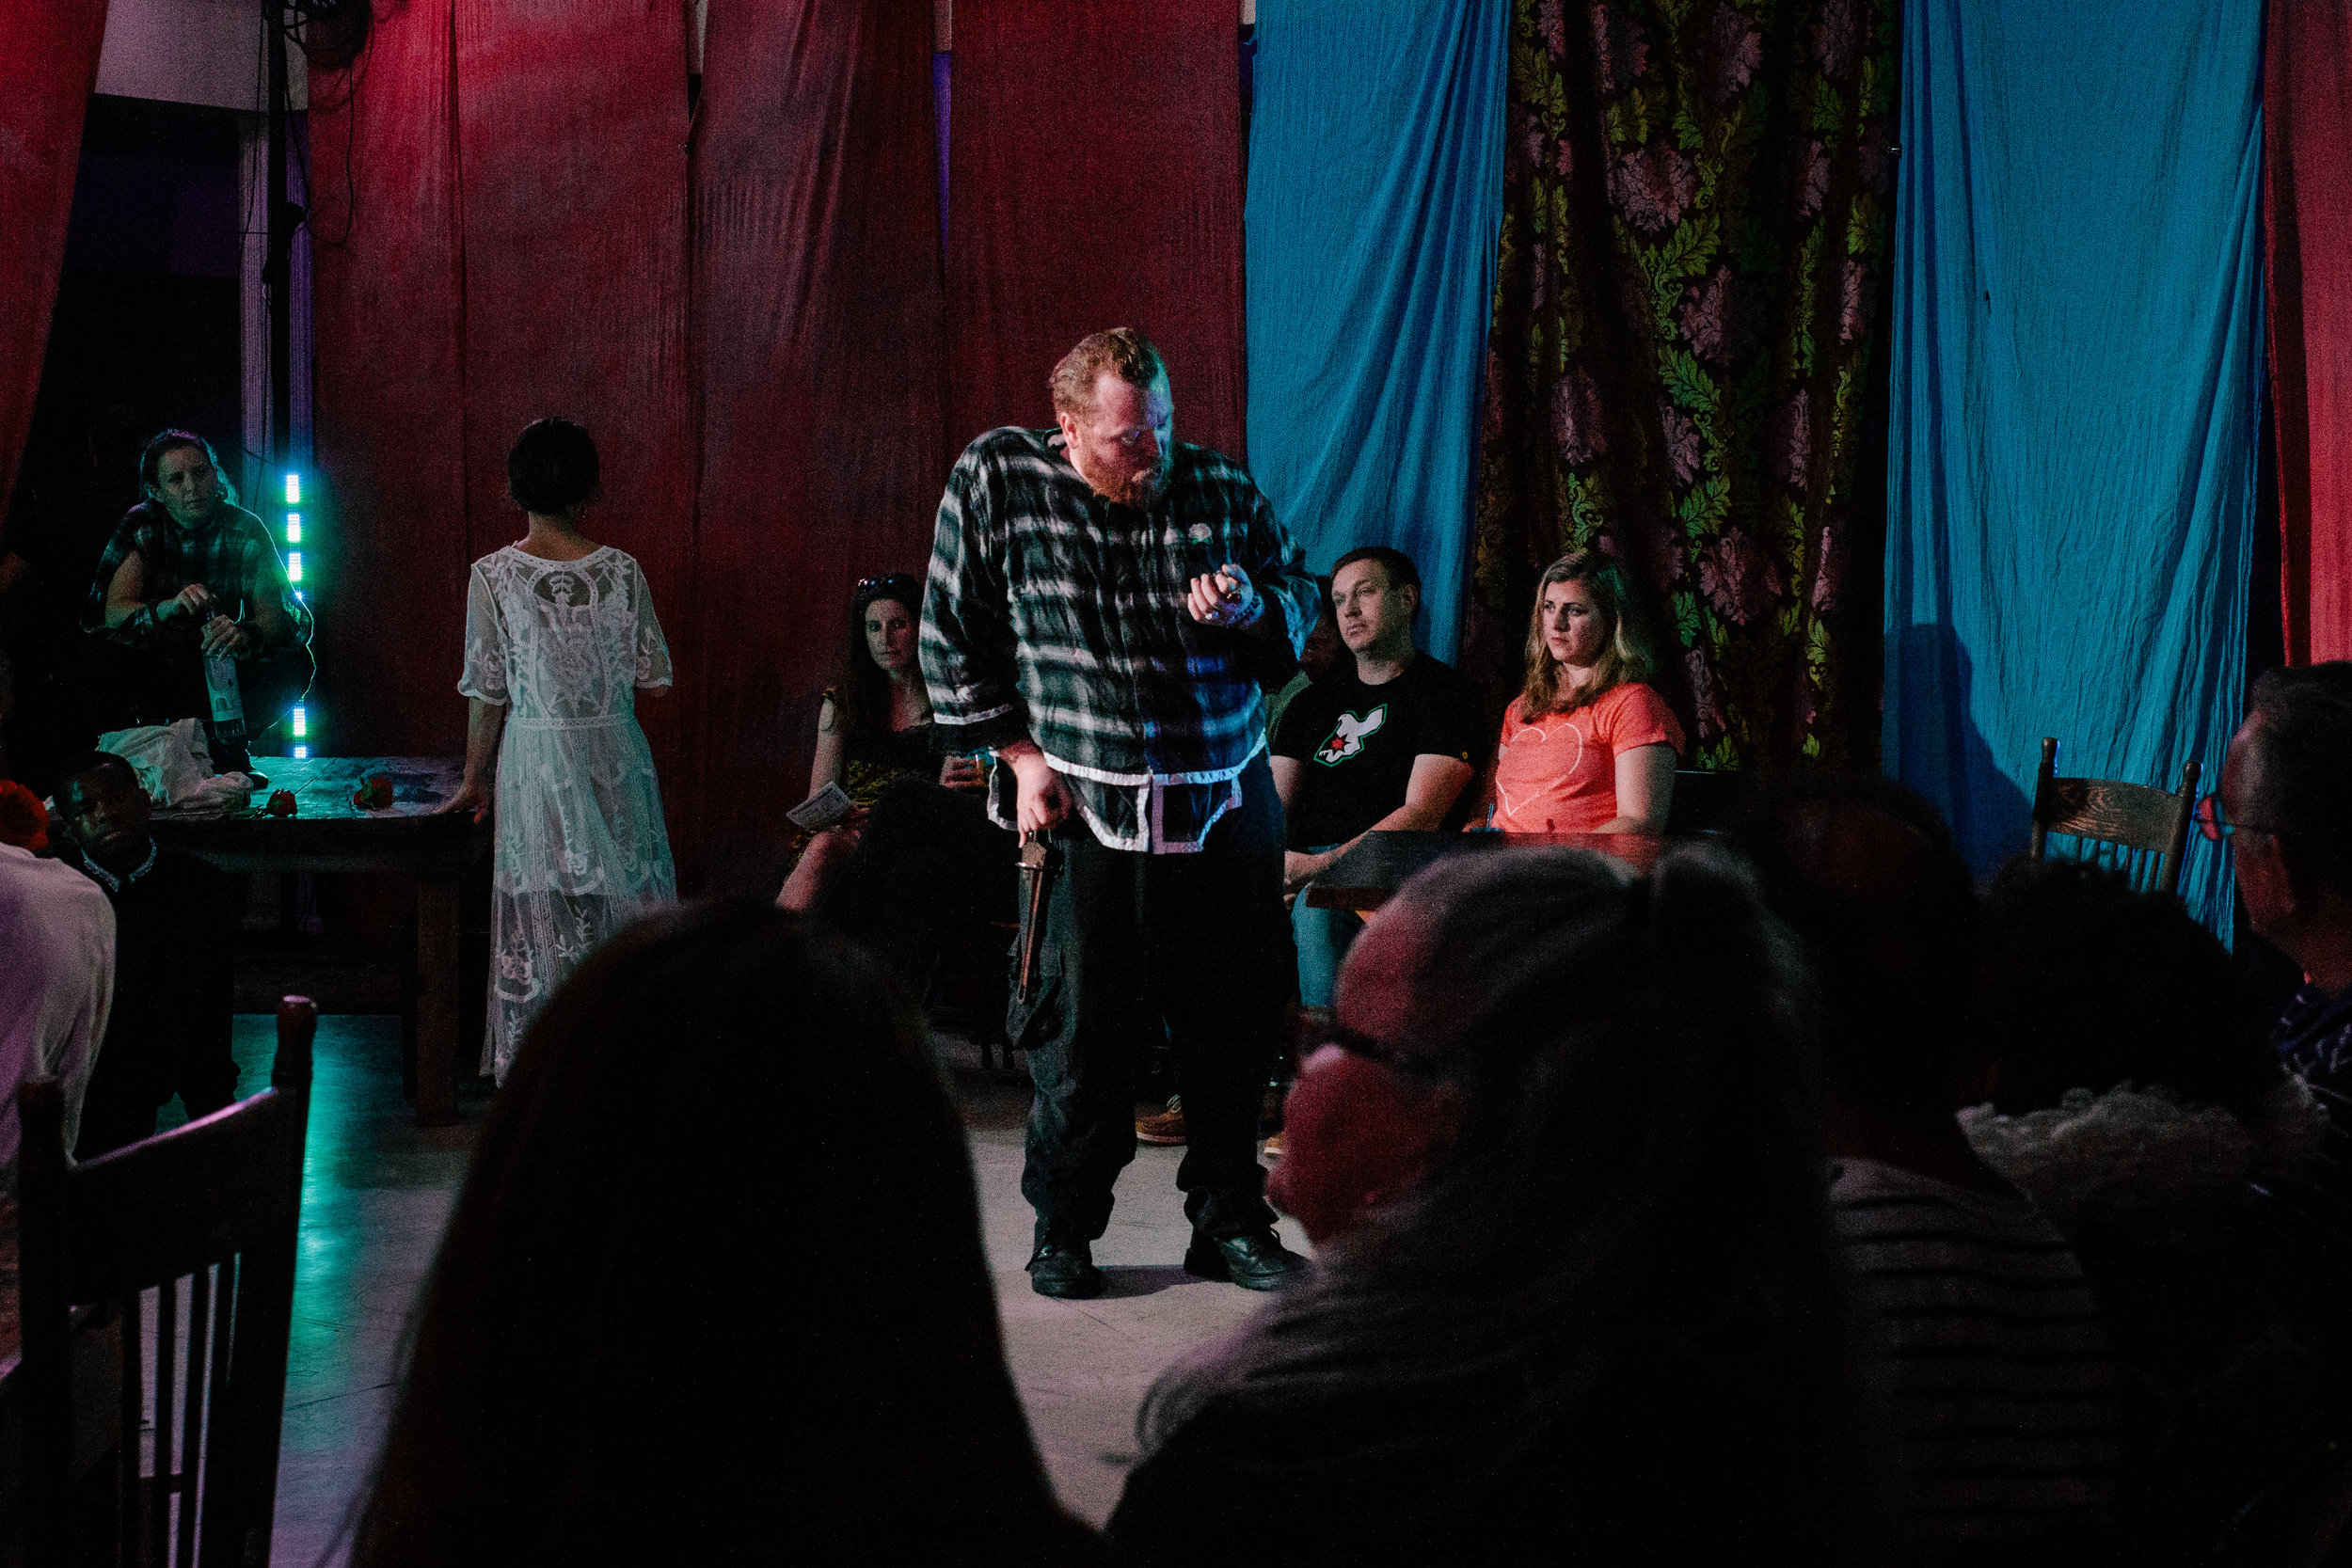 Richard arrives, ready to woo the war widow Lady Anne. He tells the audience that he was responsible for the death of her husband and father. She resists at first, but is won over.